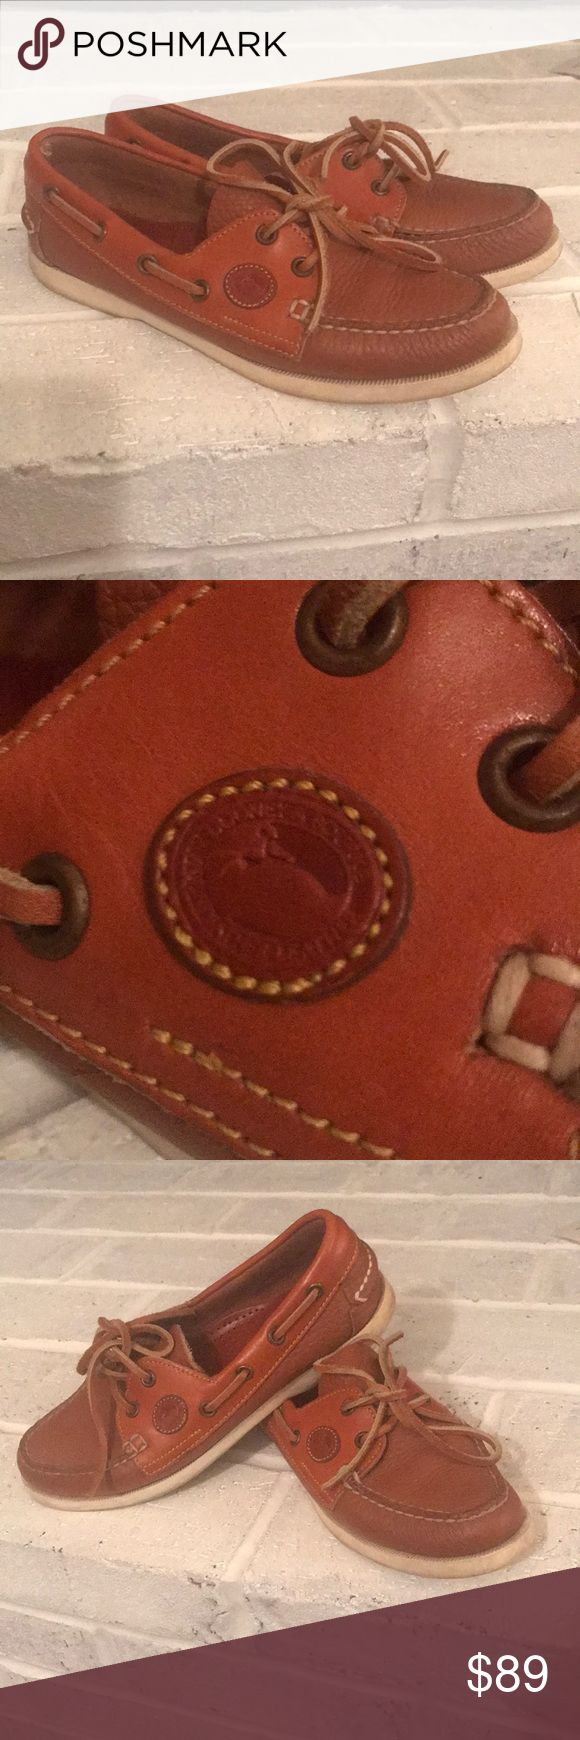 🚩Dooney & Bourke Leather Boat shoes Gorgeous Dooney and Bourke leather boat shoes. Very Good used condition!! Color as pictured not in cover photo.😍 👞 Dooney & Bourke Shoes Flats & Loafers